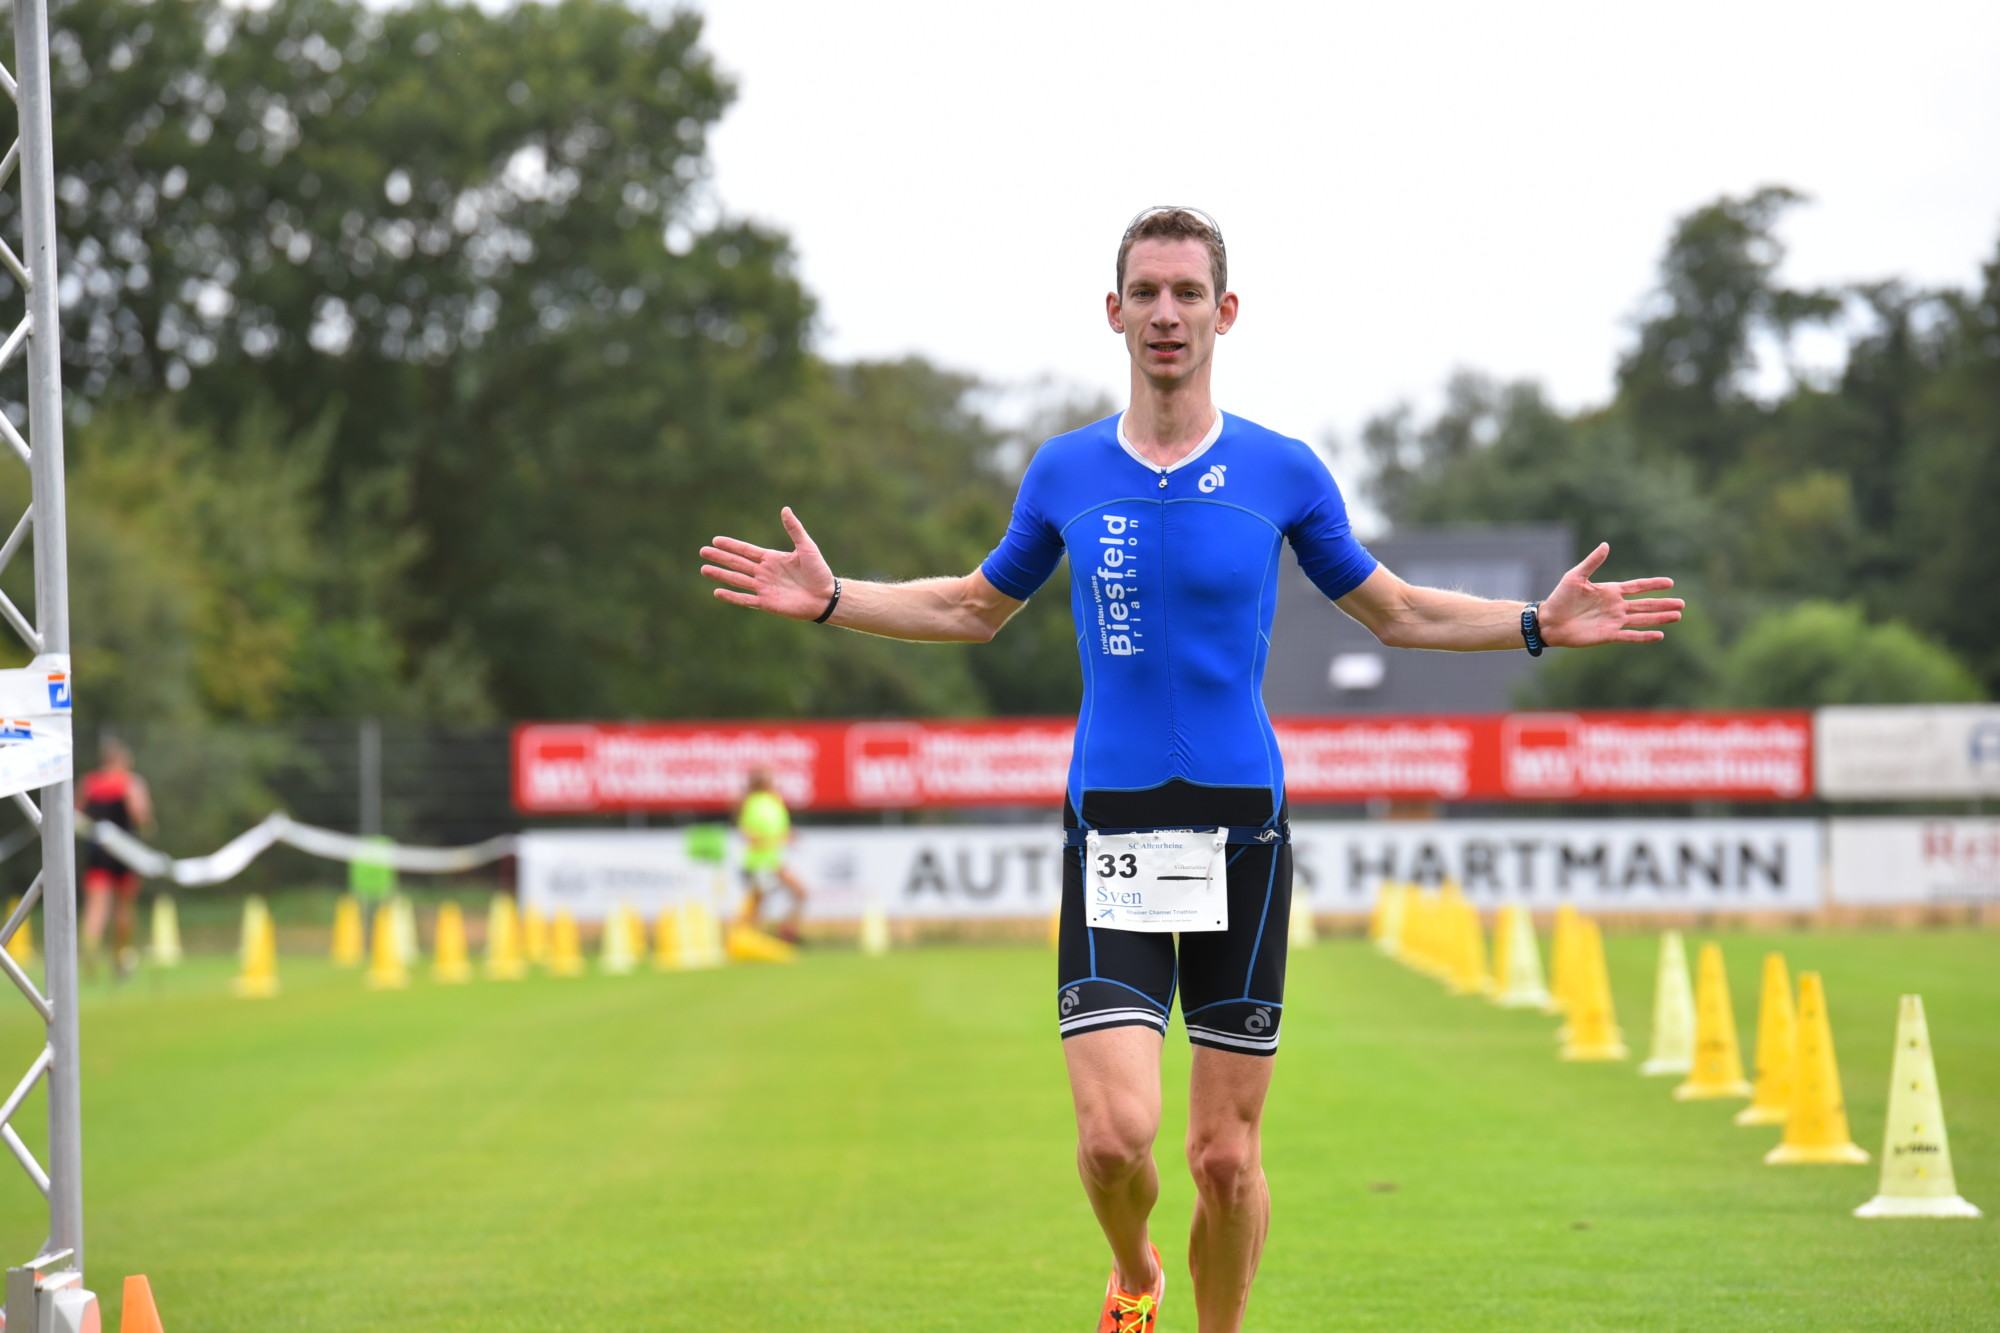 Rheine_Triathlon_2019_Union_Biesfeld_Triathlon